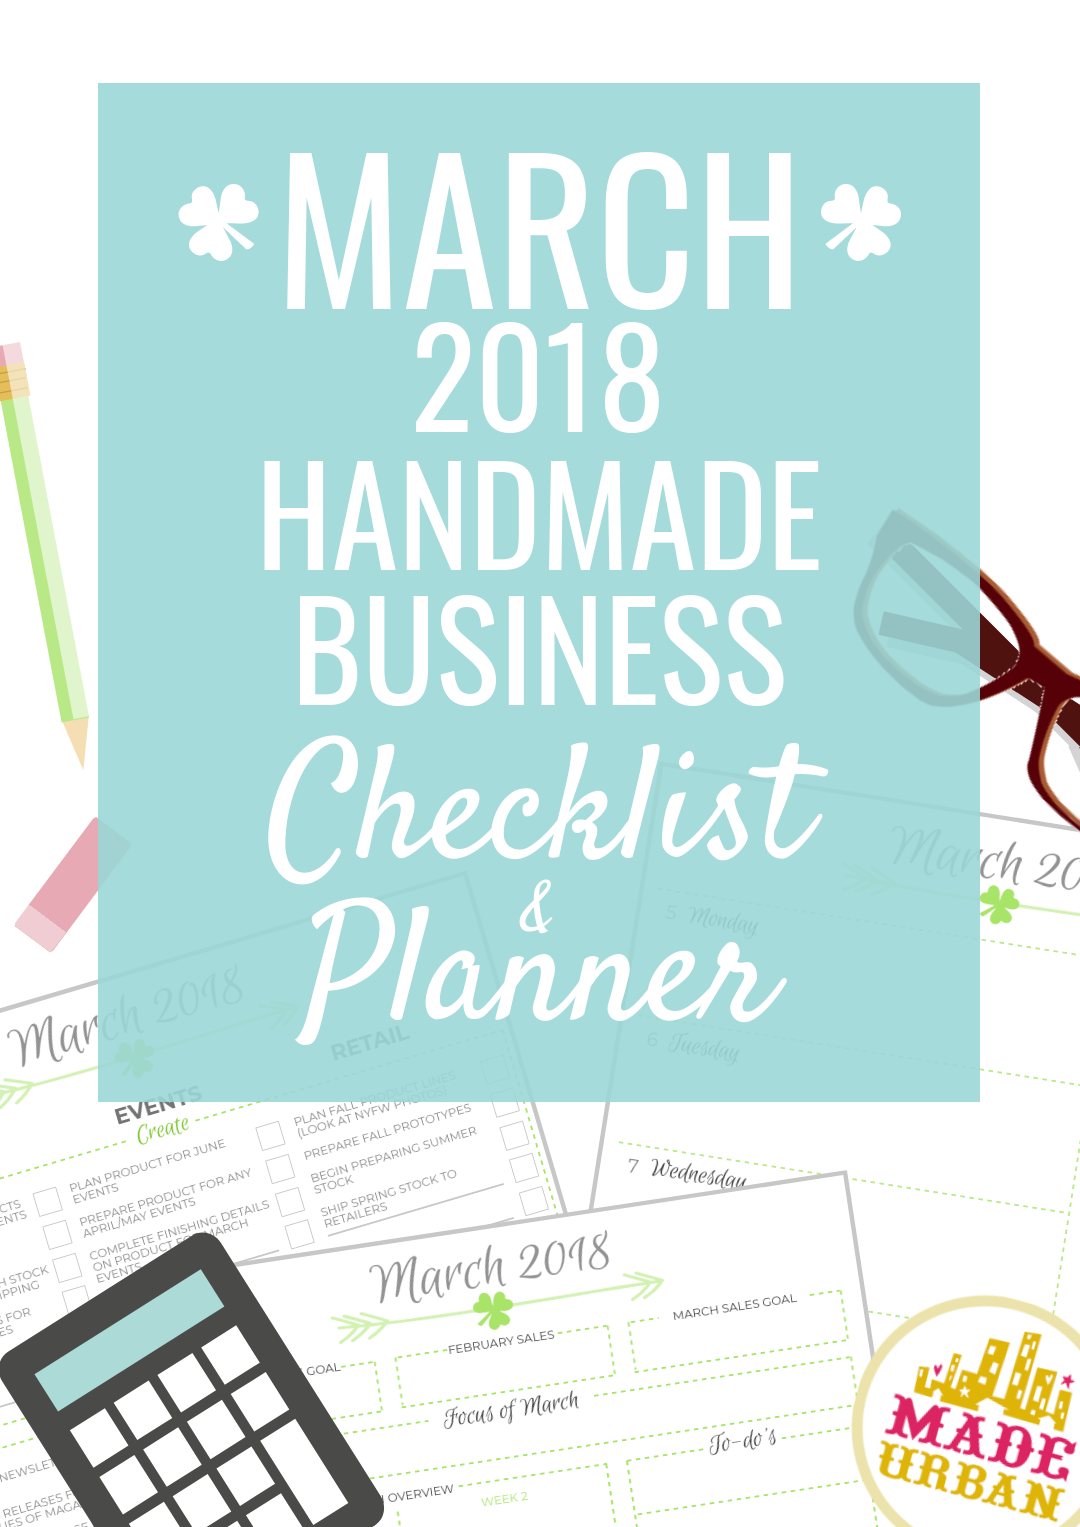 Wondering what to work on for your small handmade business to be successful in March? This article has a detailed list plus a printable checklist & planner.